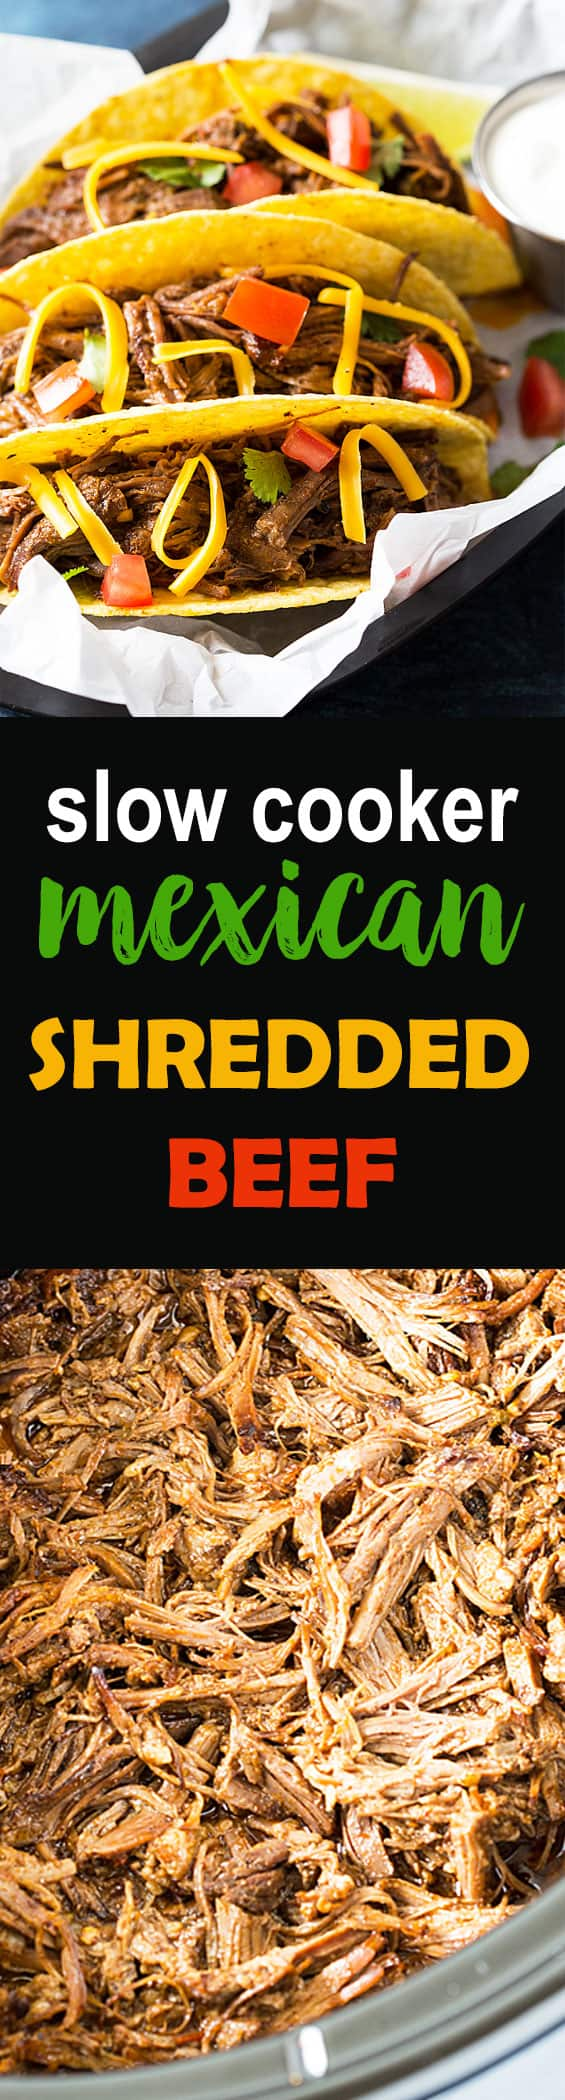 A two image vertical collage of slow cooker Mexican shredded beef with overlay text.